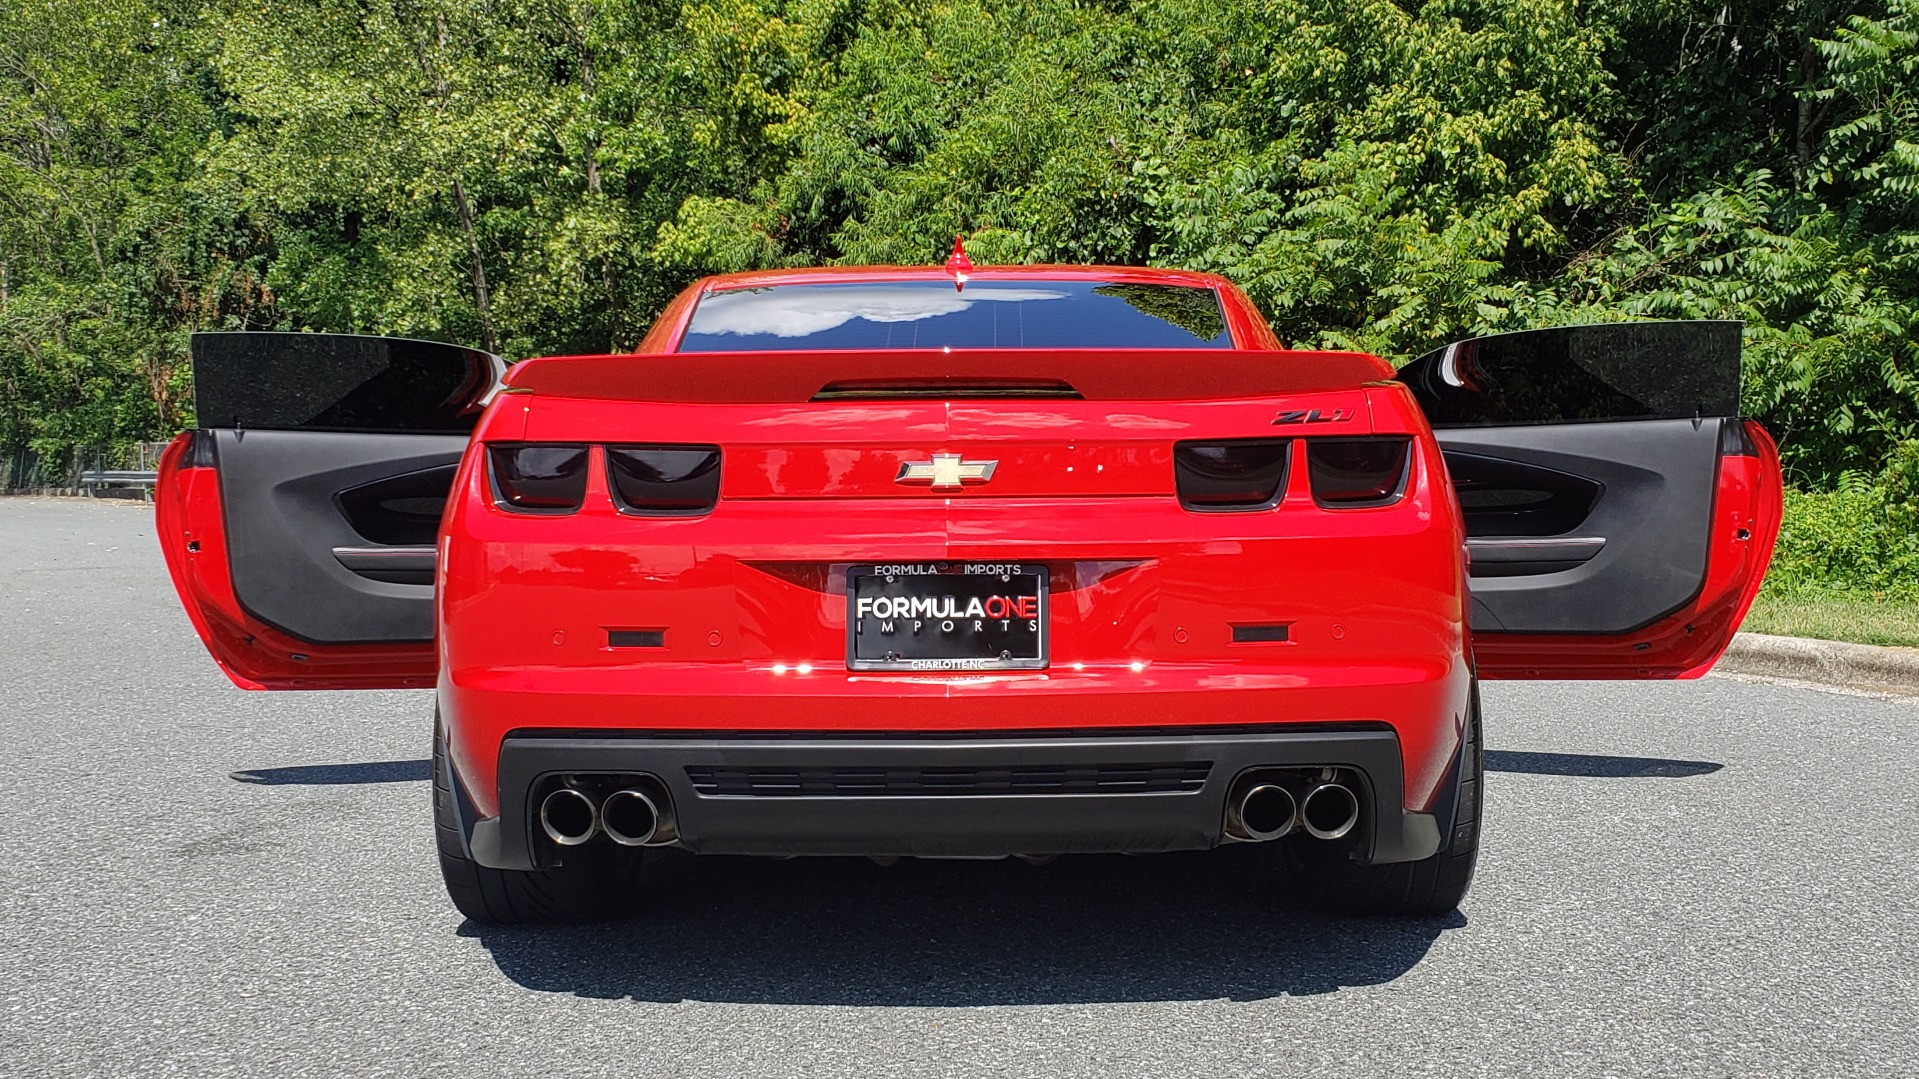 Used 2013 Chevrolet CAMARO ZL1 580HP / AUTO / NAV / BOSTON ACOUSTIC SND / REARVIEW for sale $40,995 at Formula Imports in Charlotte NC 28227 37